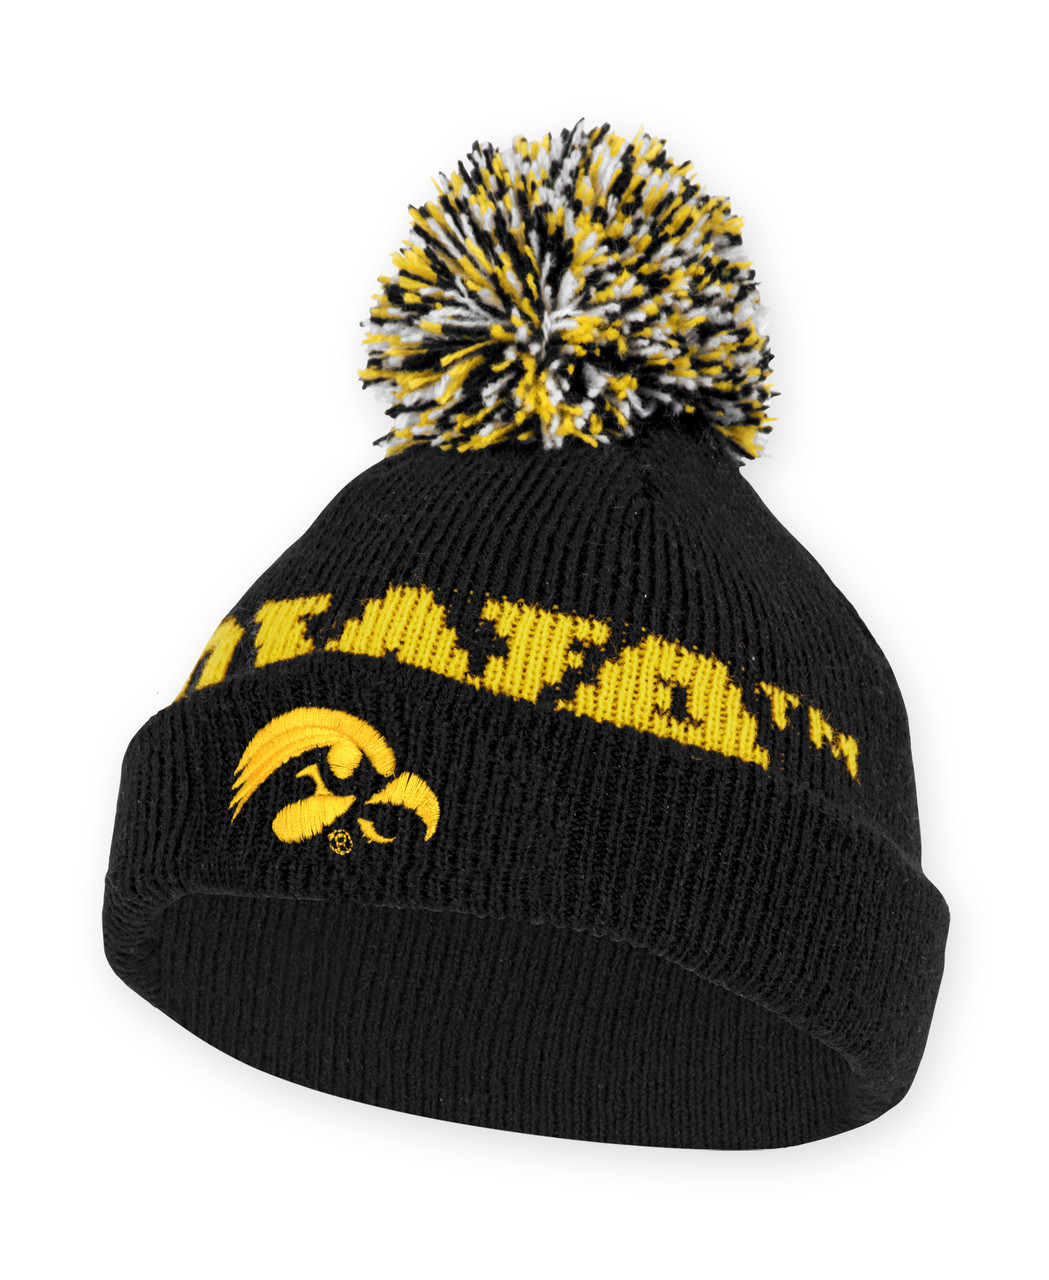 19e72d5fc6b Iowa Hawkeyes Baby Beanie - Black and Gold - Knit